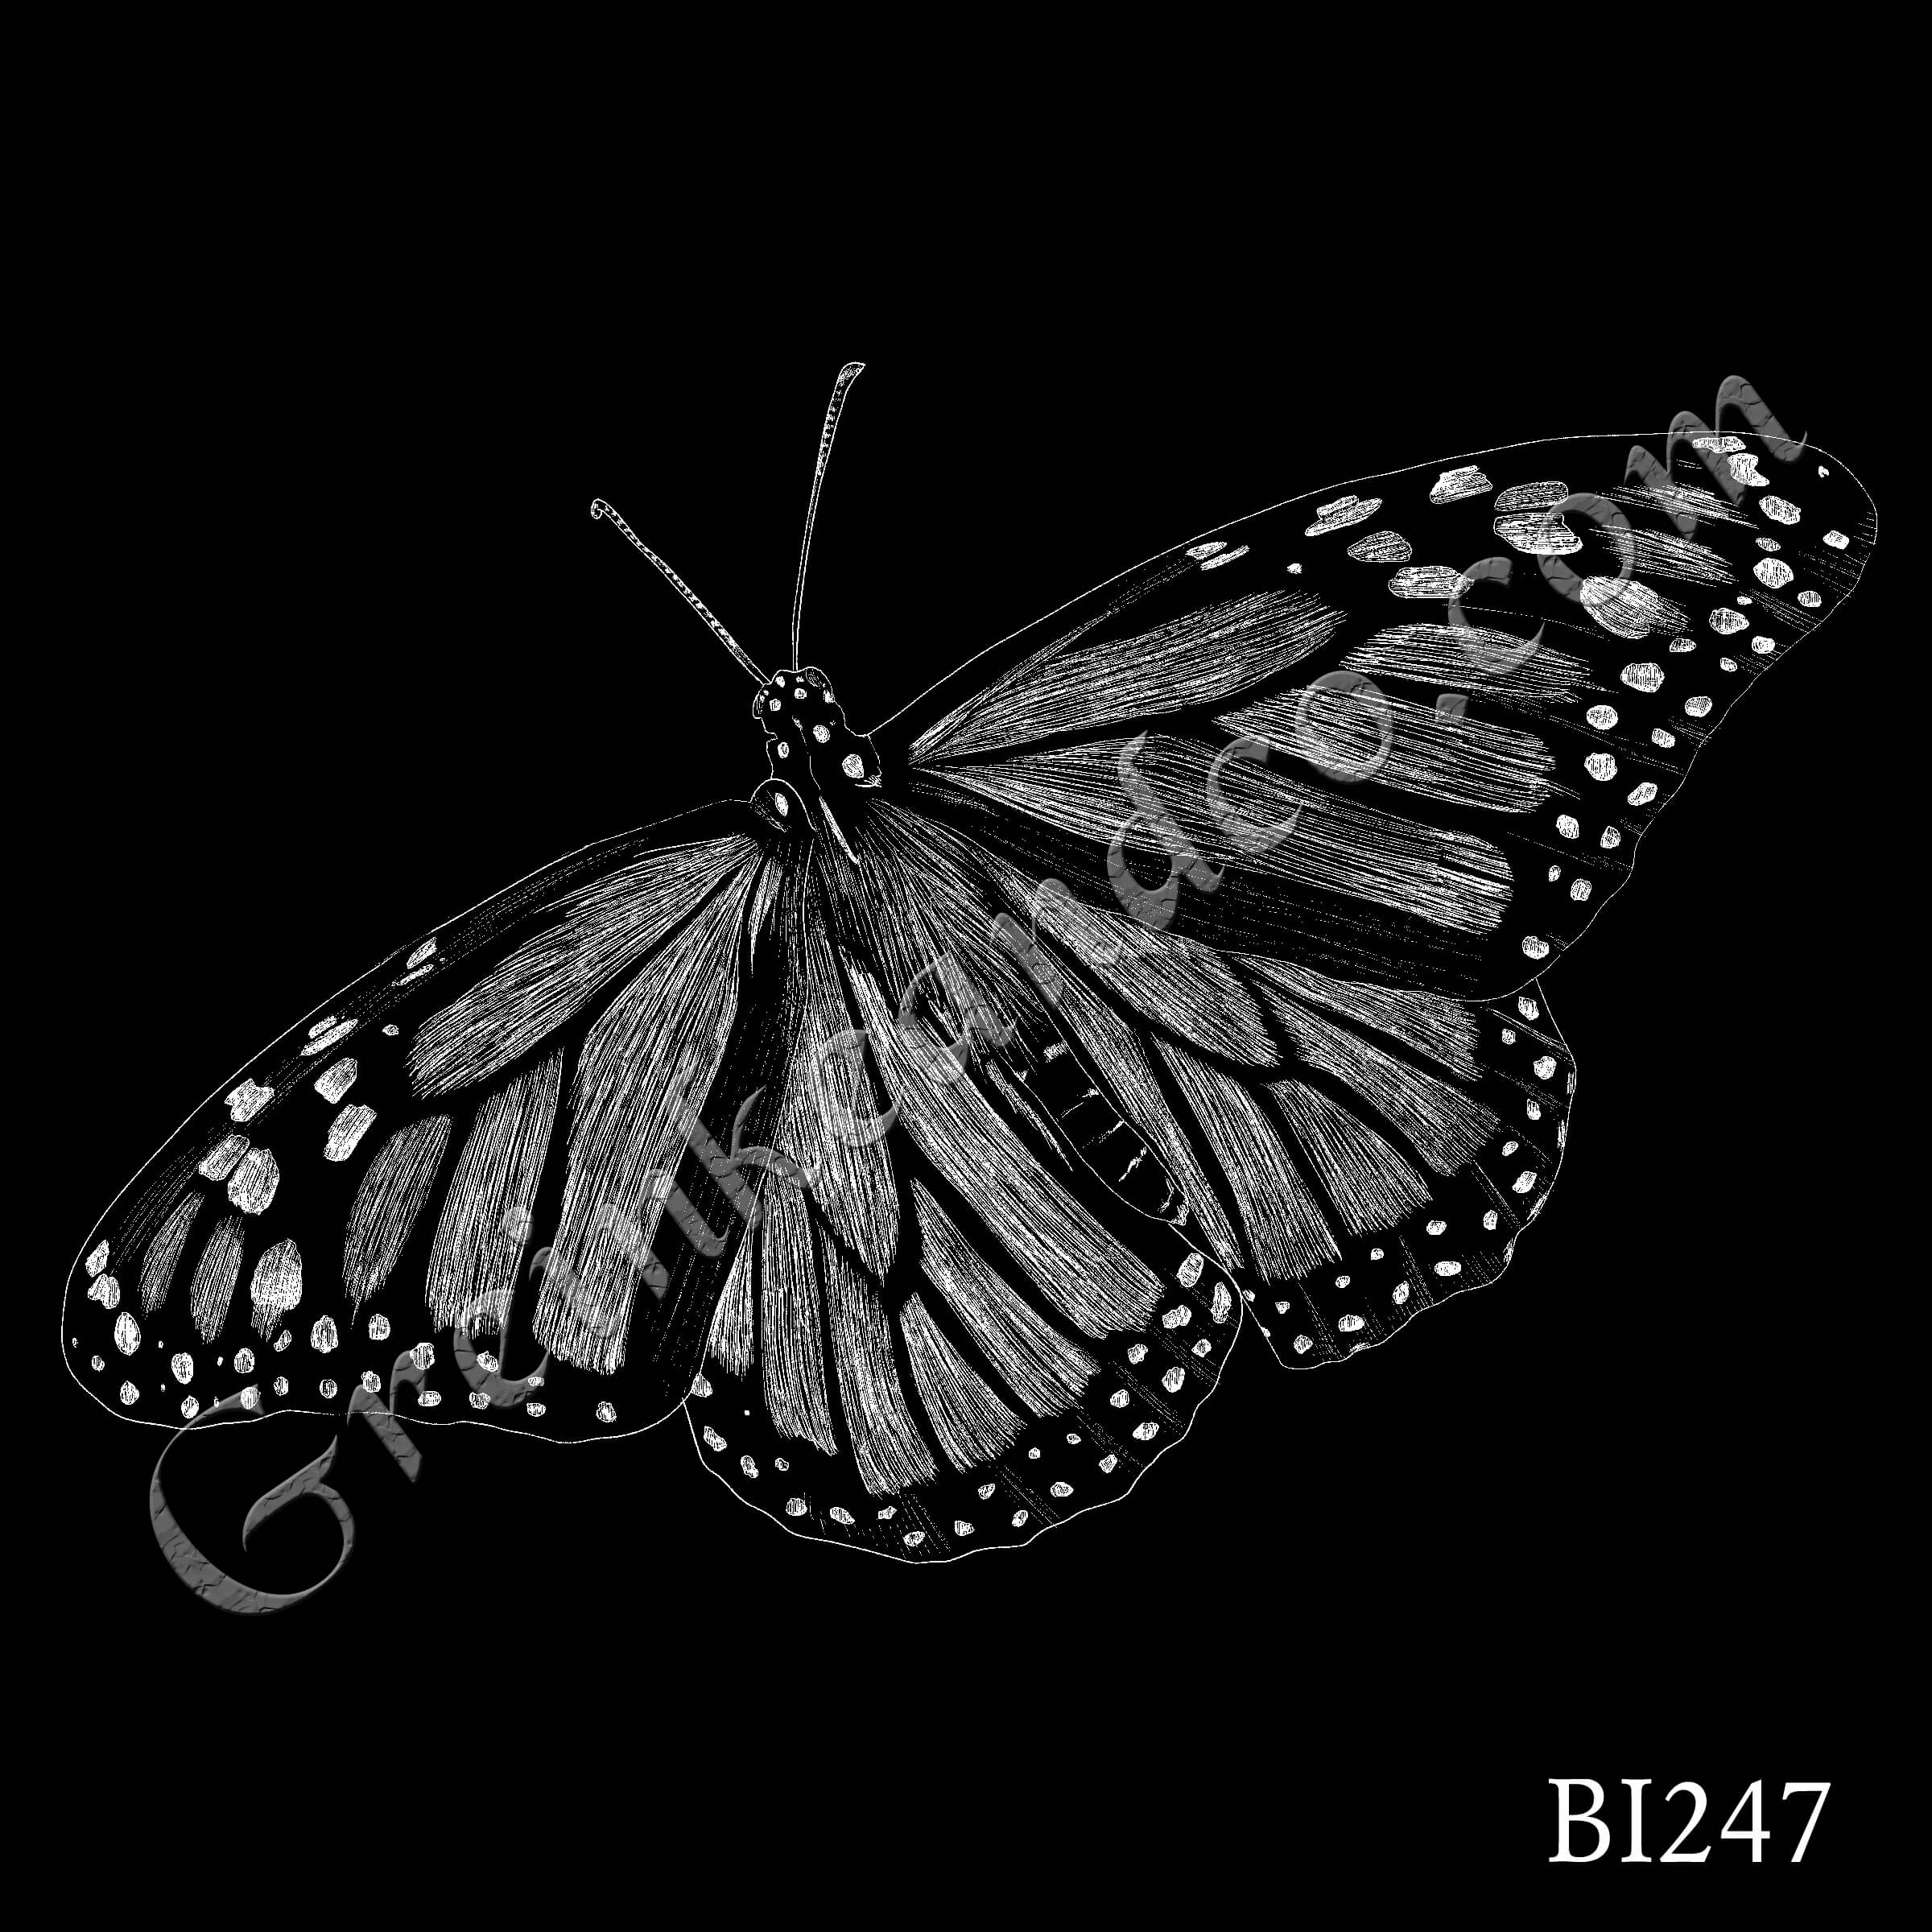 BI247 - Monarch Butterfly